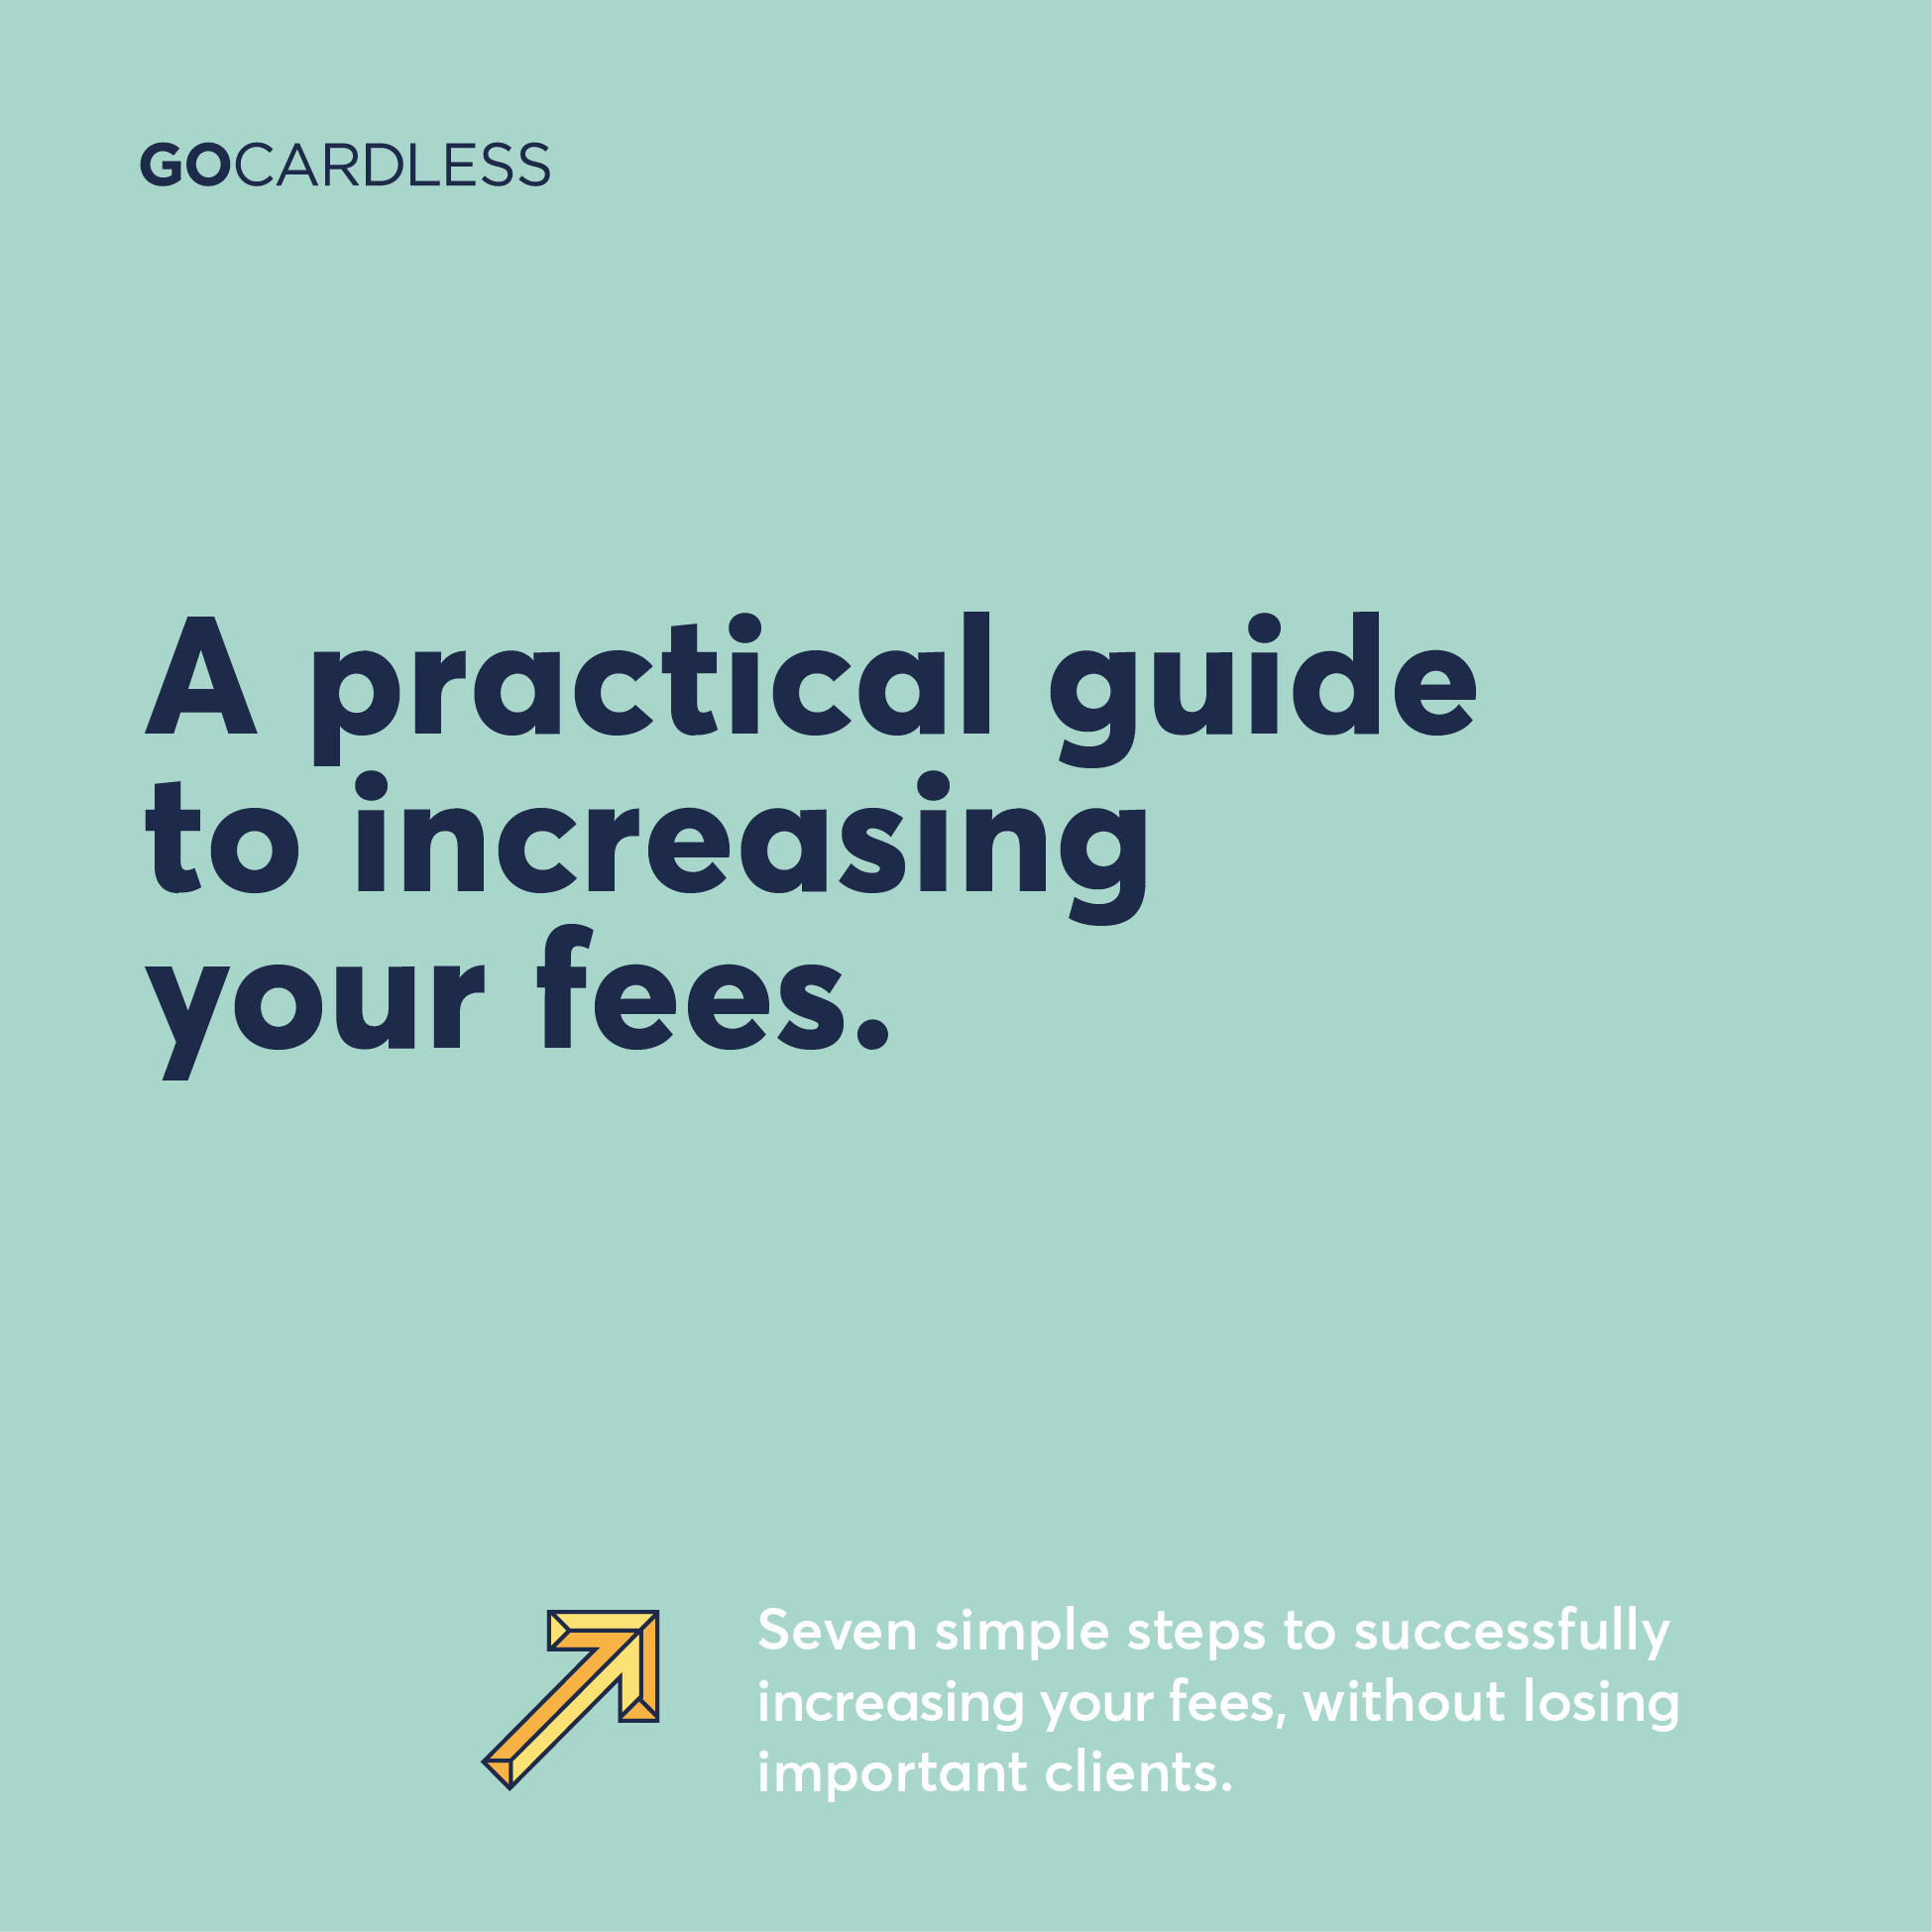 Practical guide to increasing fees for accountants